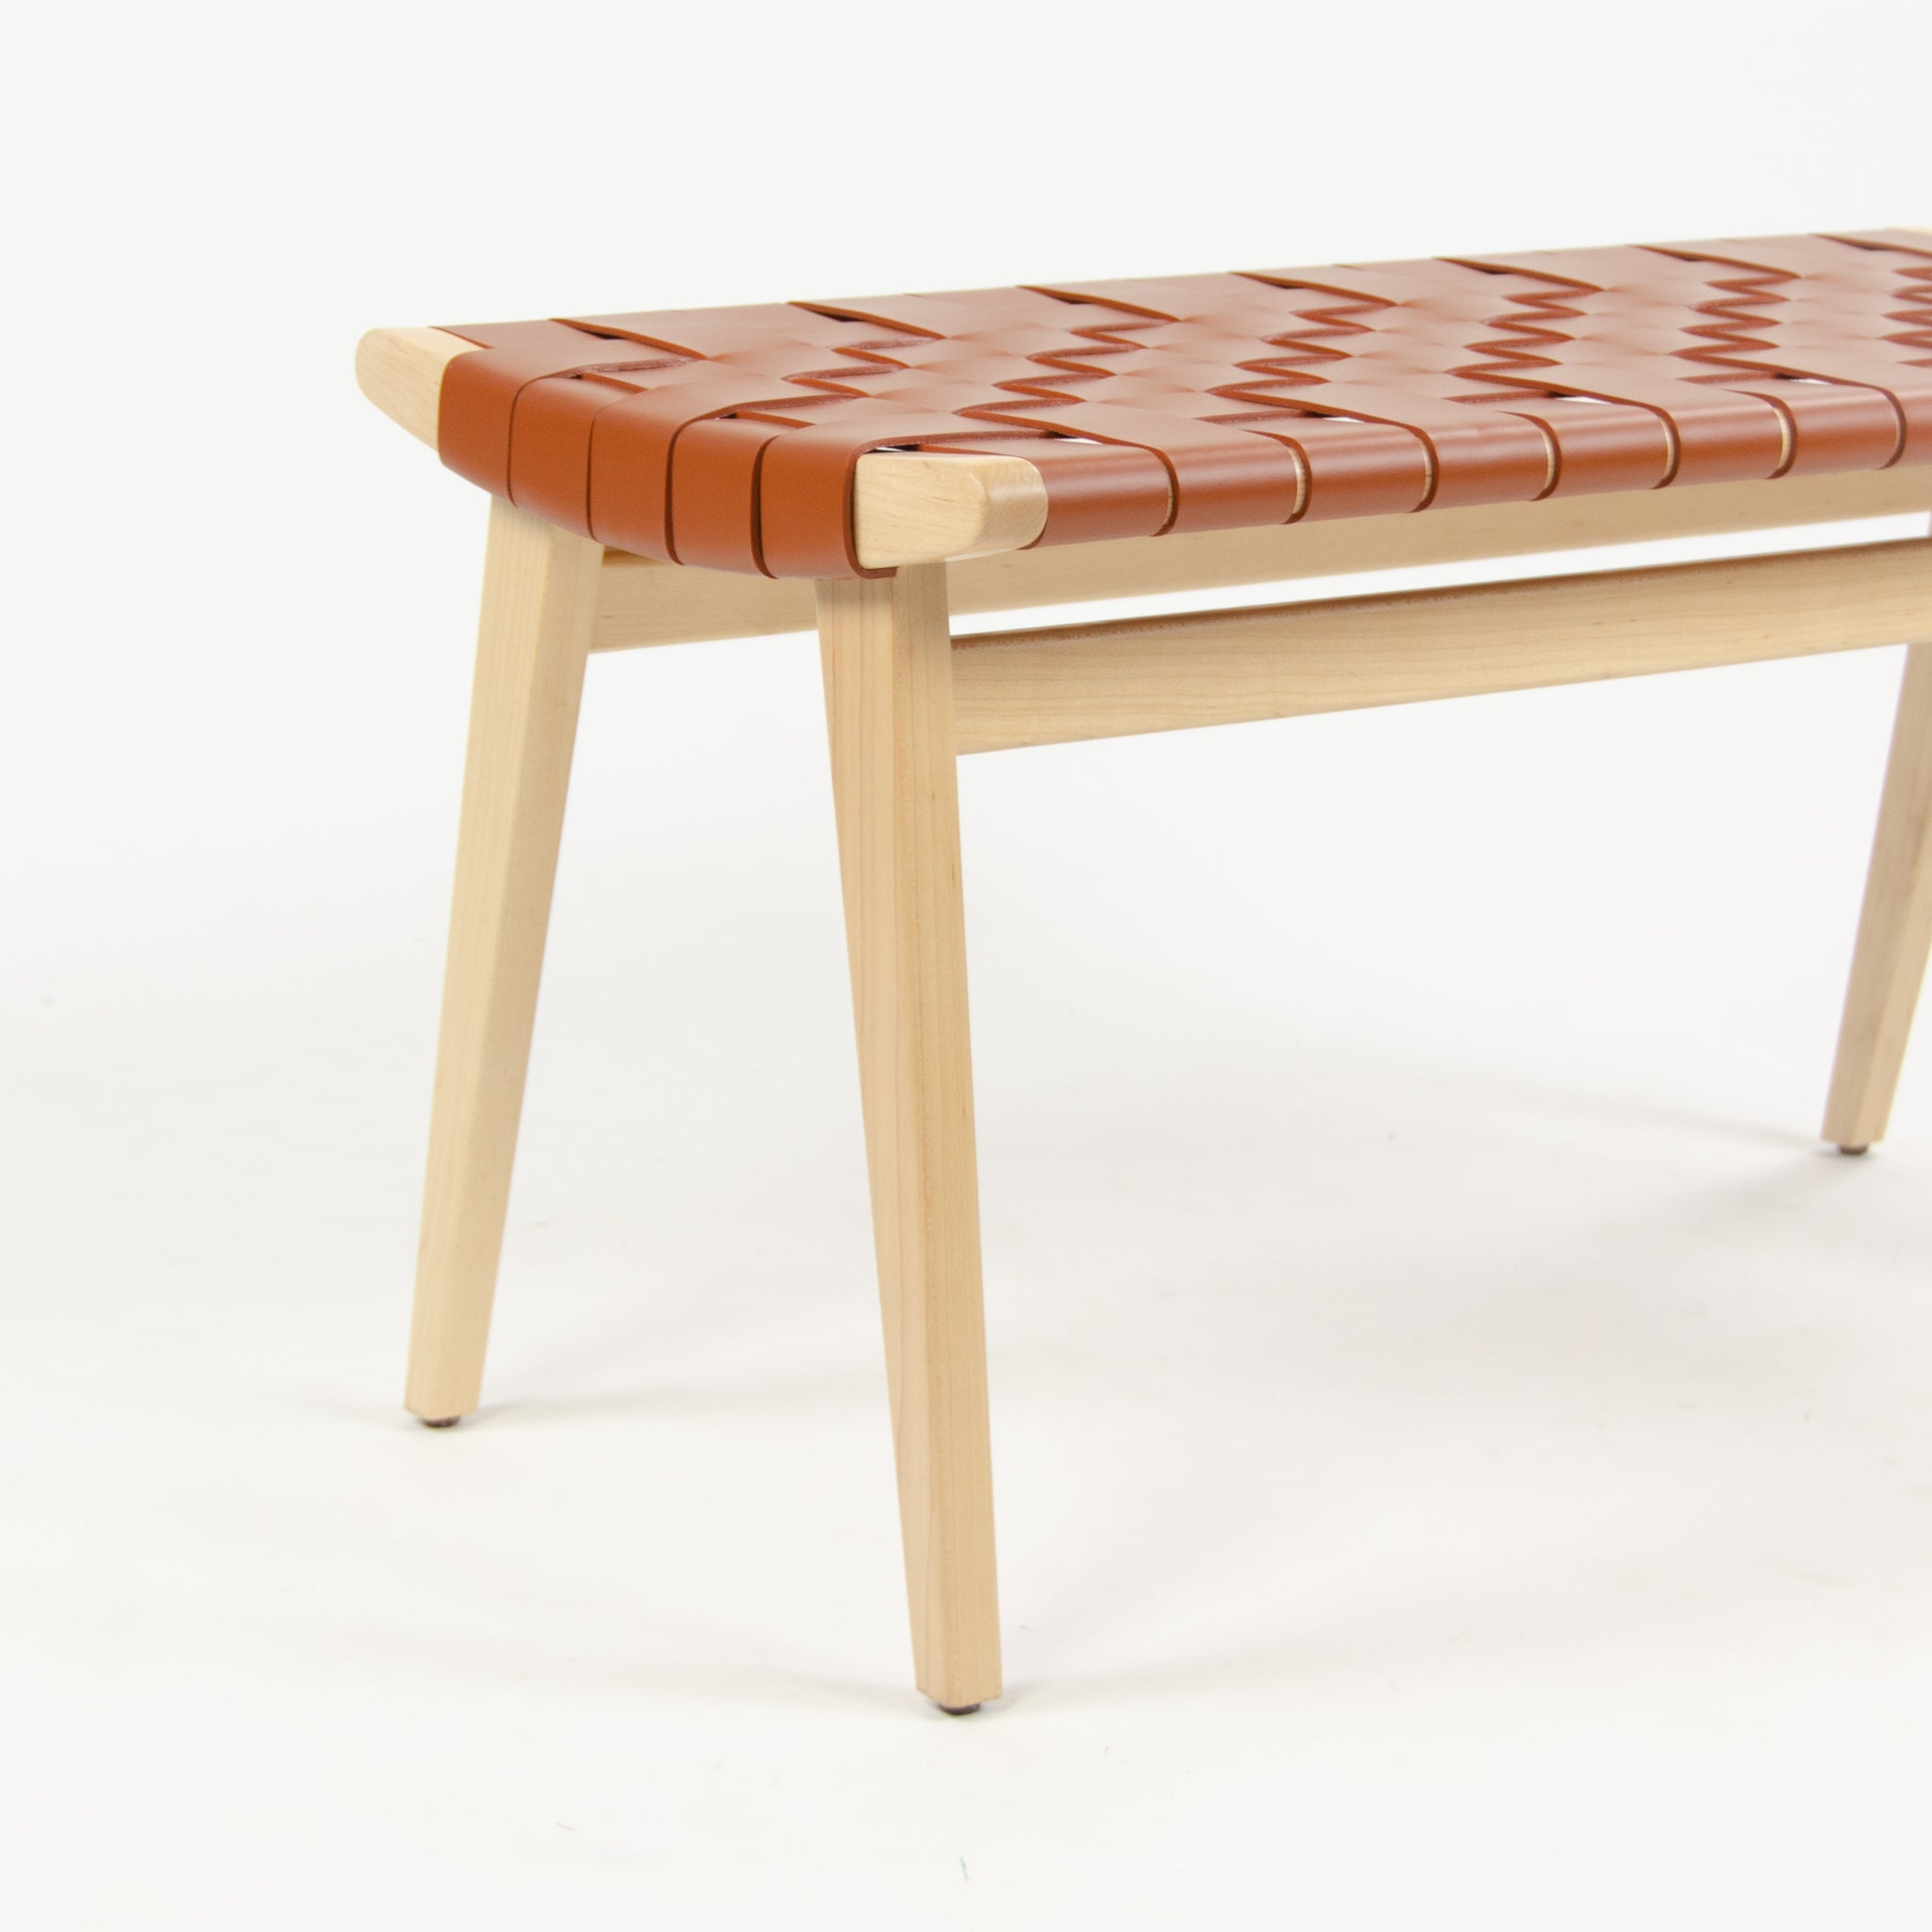 SOLD Knoll Studio Custom Jens Risom Stool with Red / Rust Leather Webbing NOS